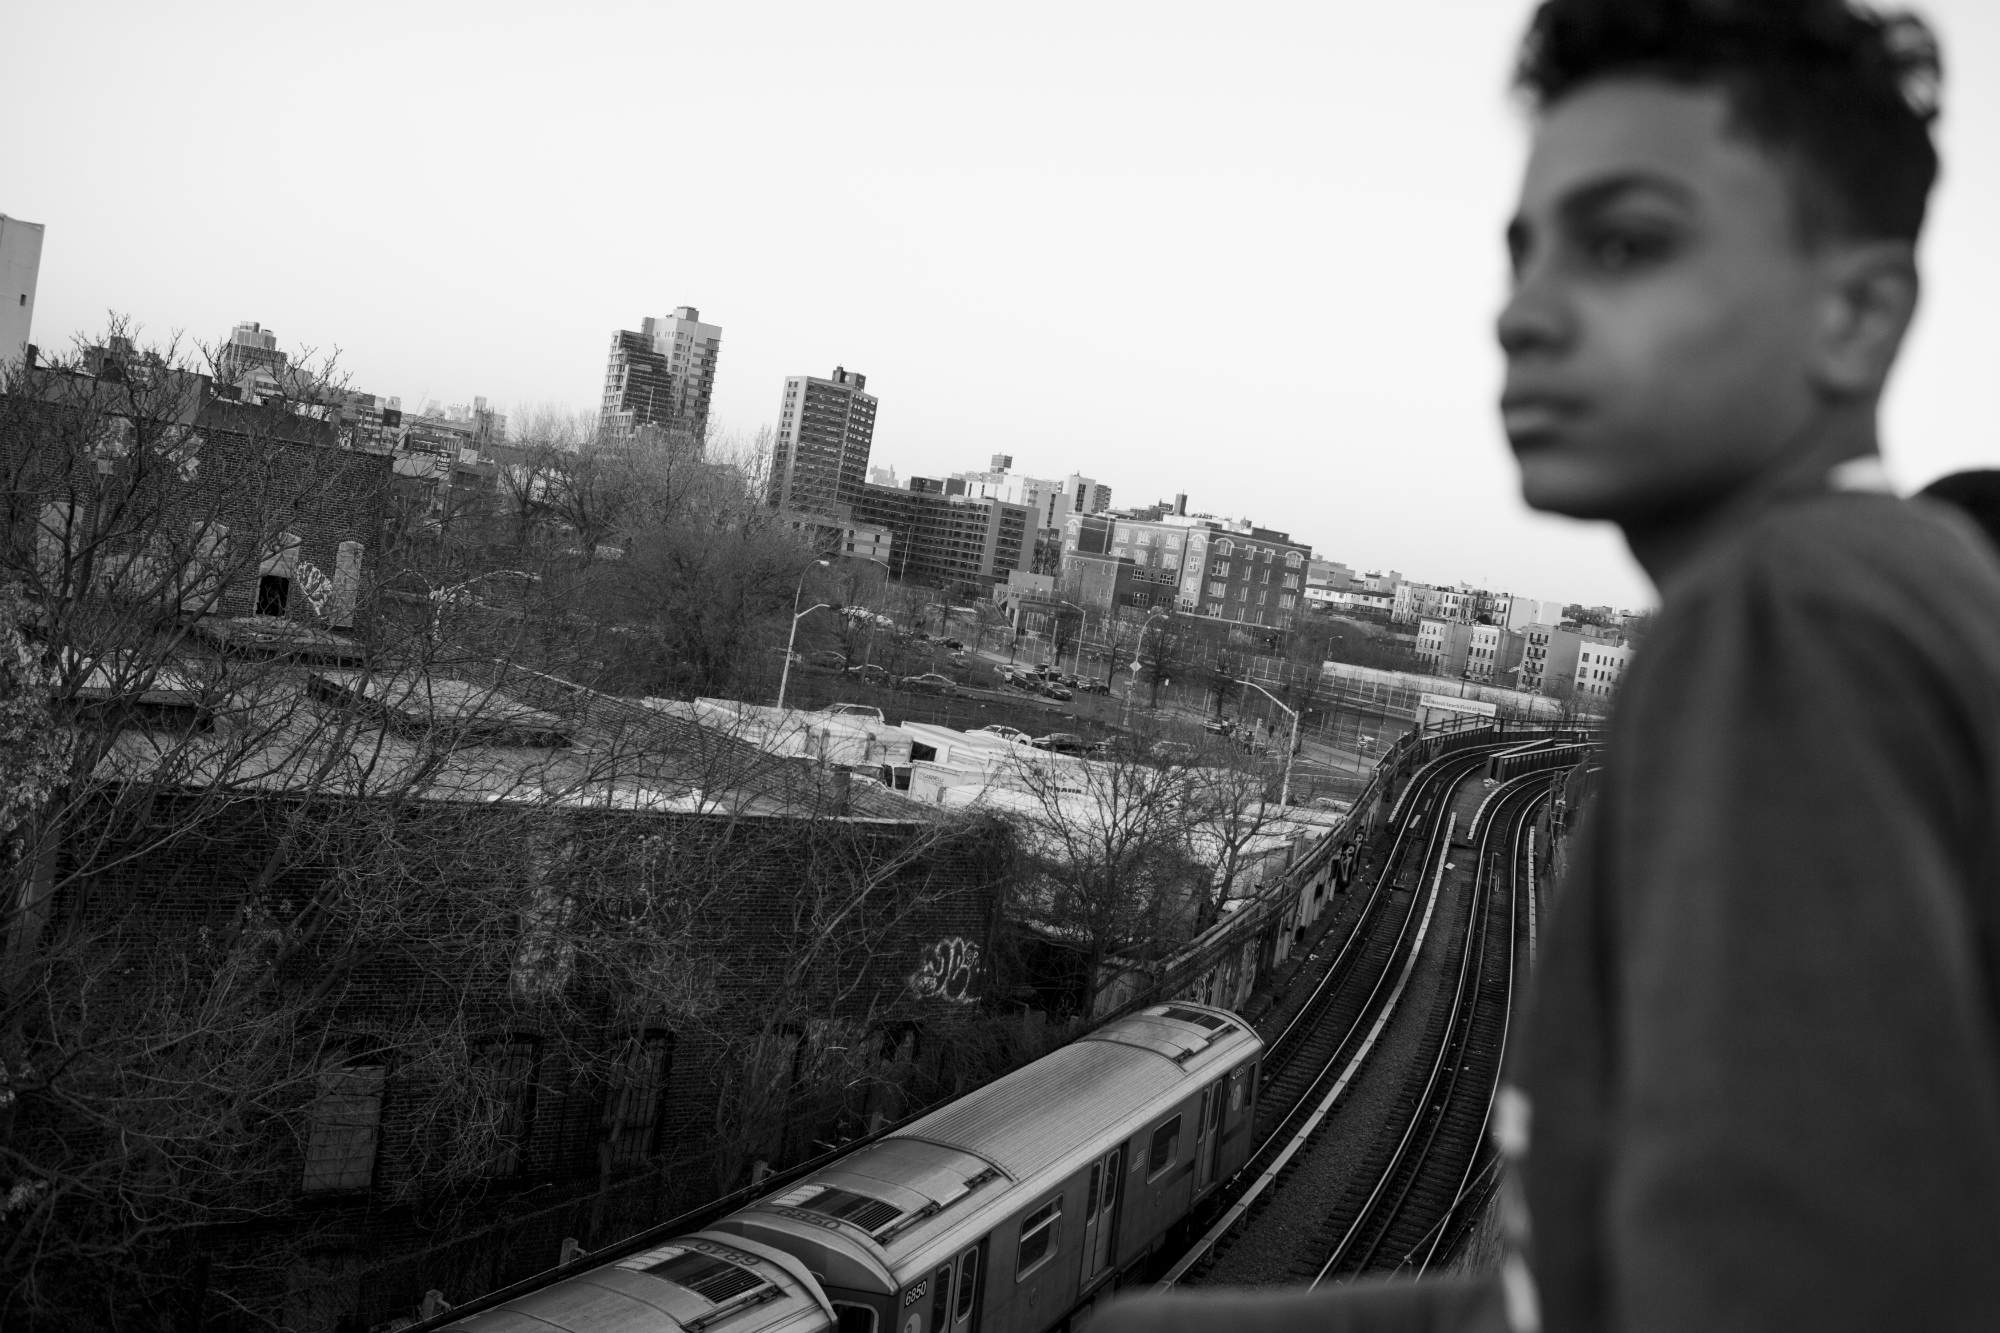 Chavi Leon overlooking his neighborhood of Mott Haven, 14 April 2016, New York. The South Bronx well known for two reasons: it is in the 15th Congressional District, the poorest district in the United States, and it's the 40th Precinct, an NYPD precinct known for its high crime rate. (Photo by Sarah Blesener/GroundTruth/Alexia Foundation)